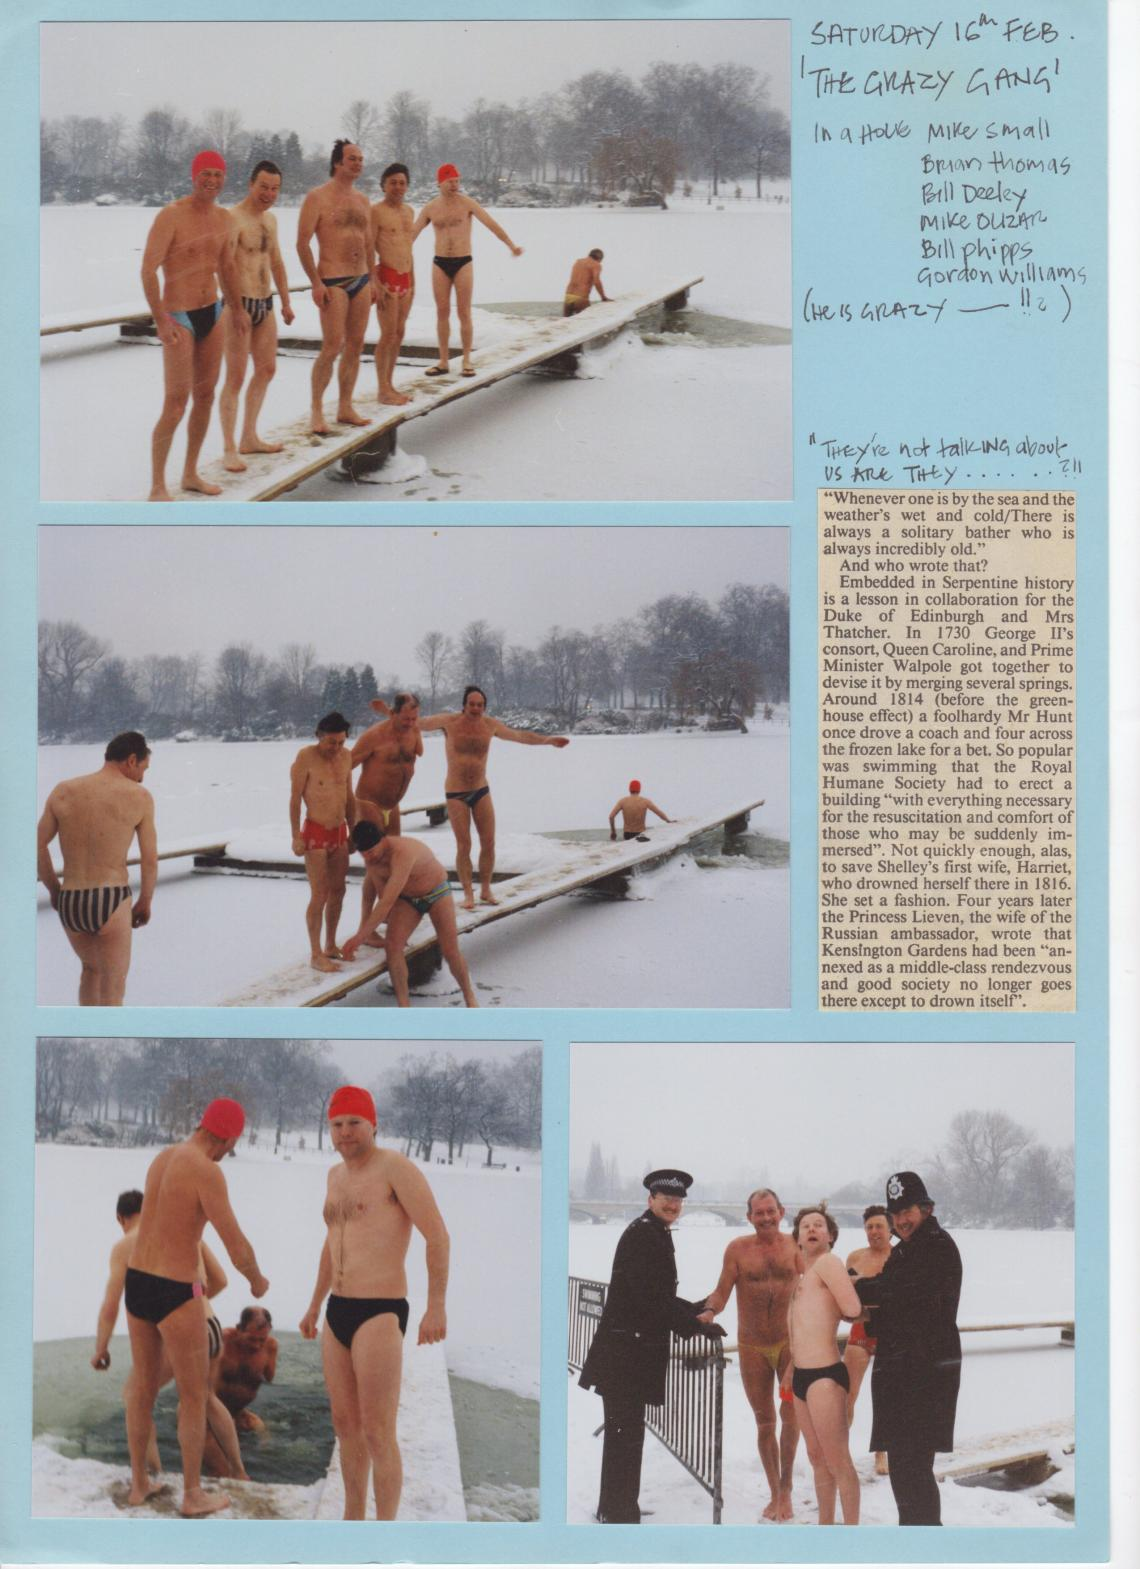 February 1991, races iced-off